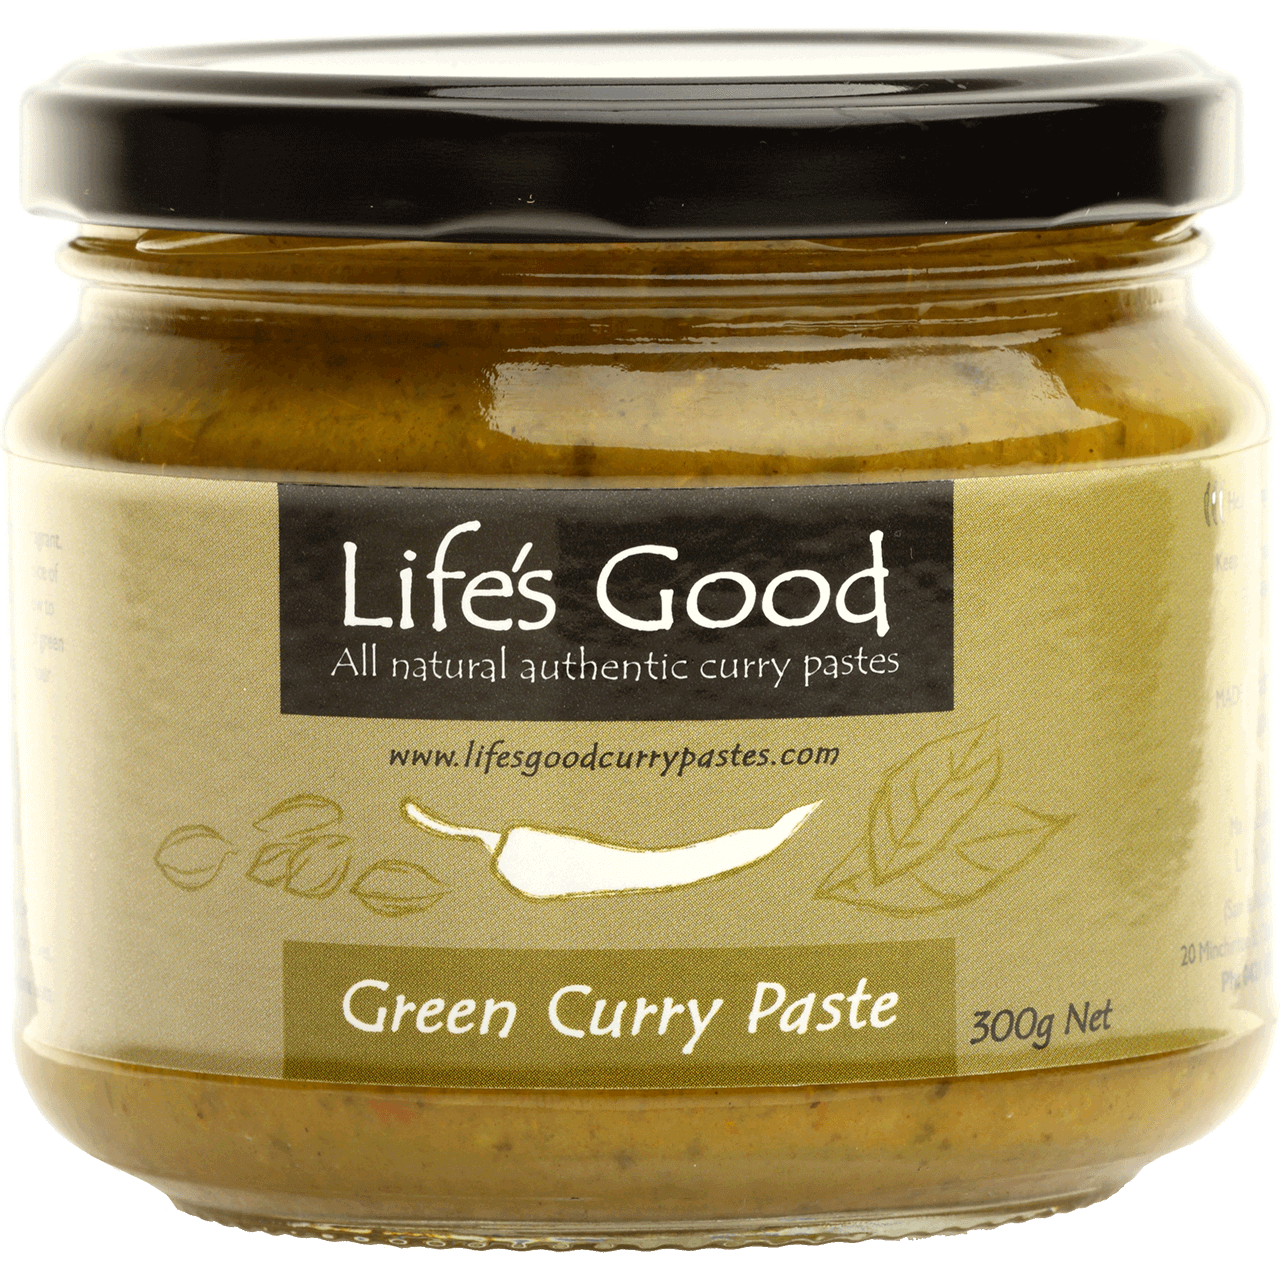 Life's Good Green Curry Paste